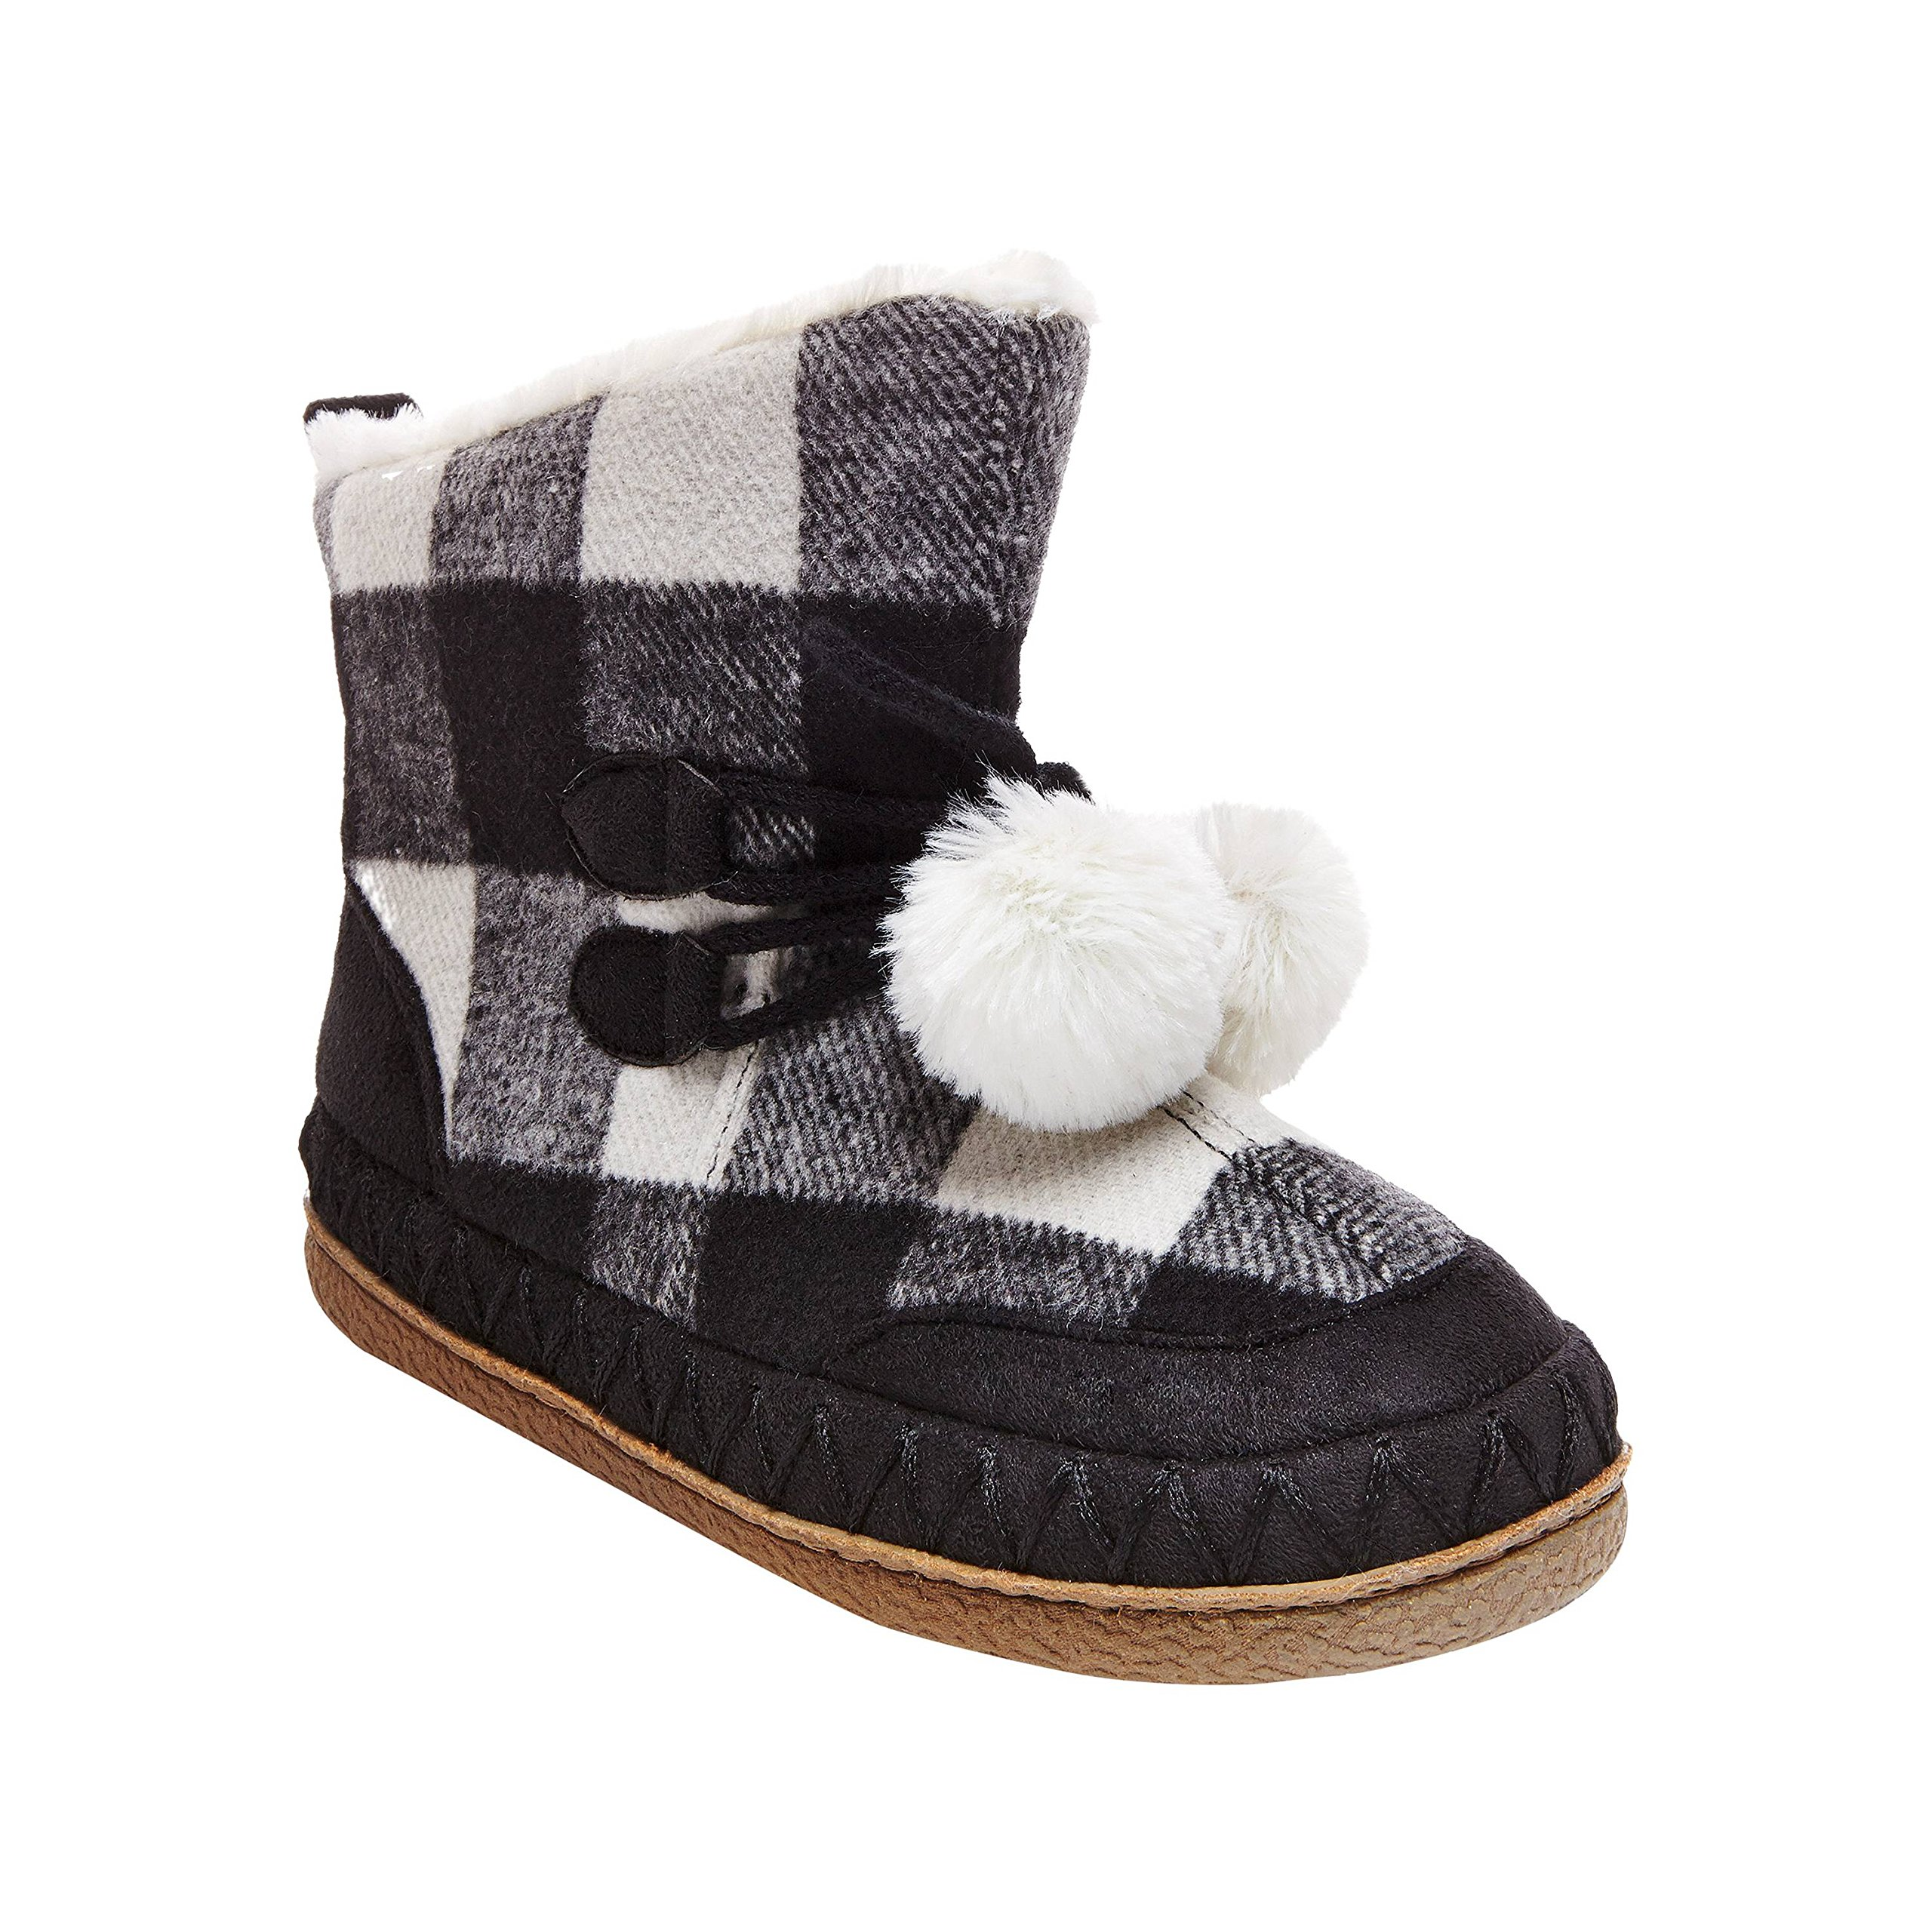 Women's Mad Love Carly Black and White Plaid Bootie Slippers Small (5-6)